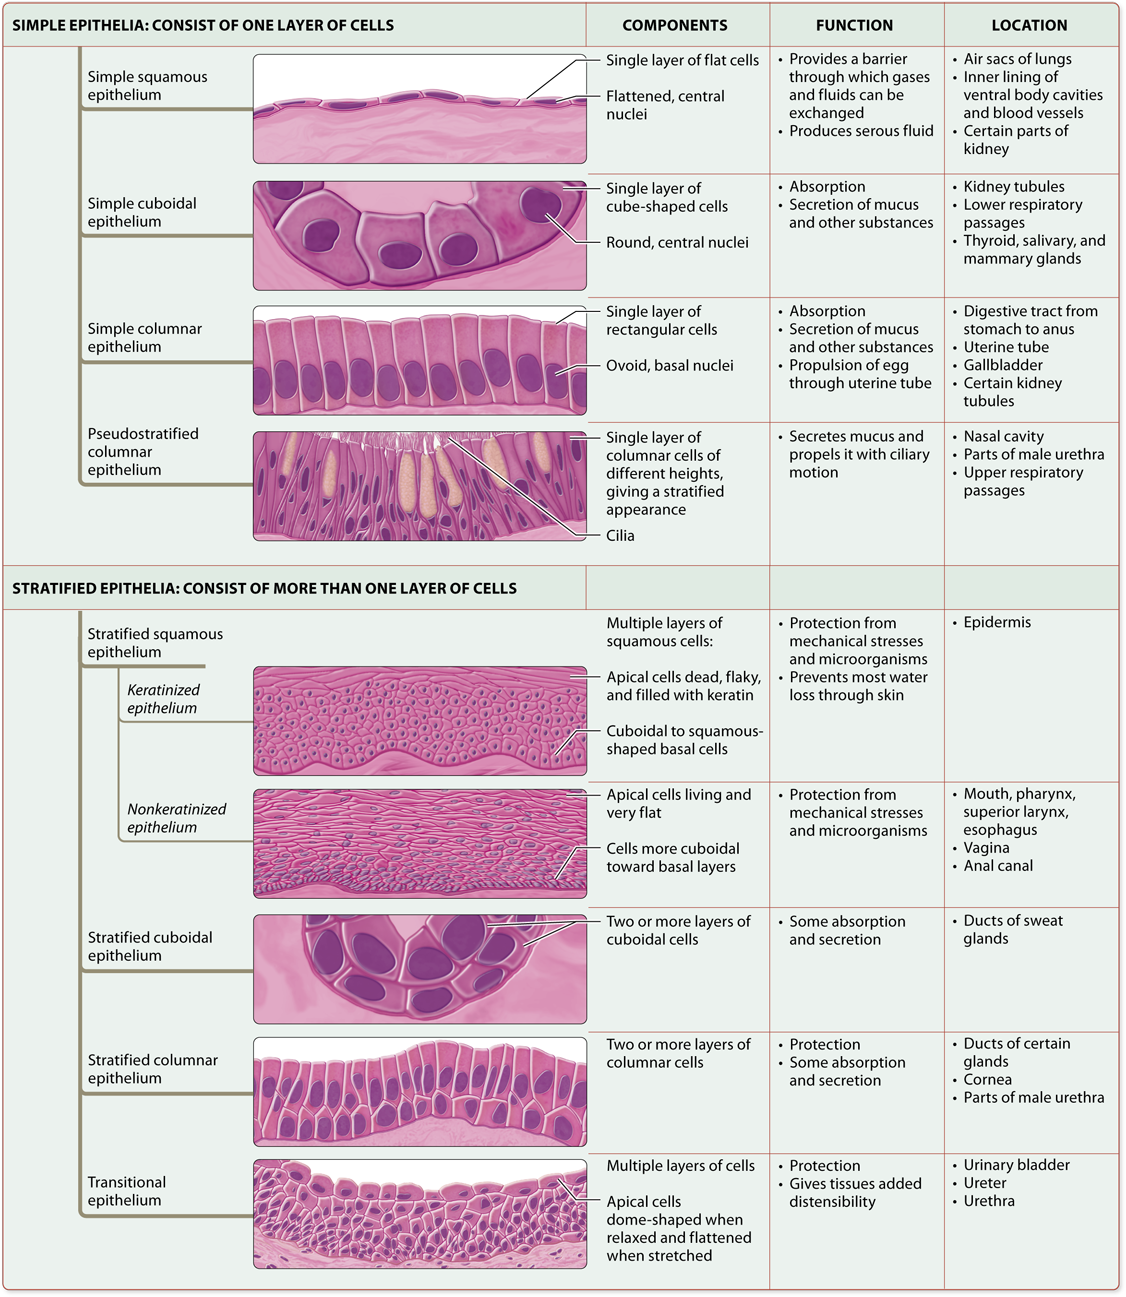 Module 4 2 Epithelial Tissues